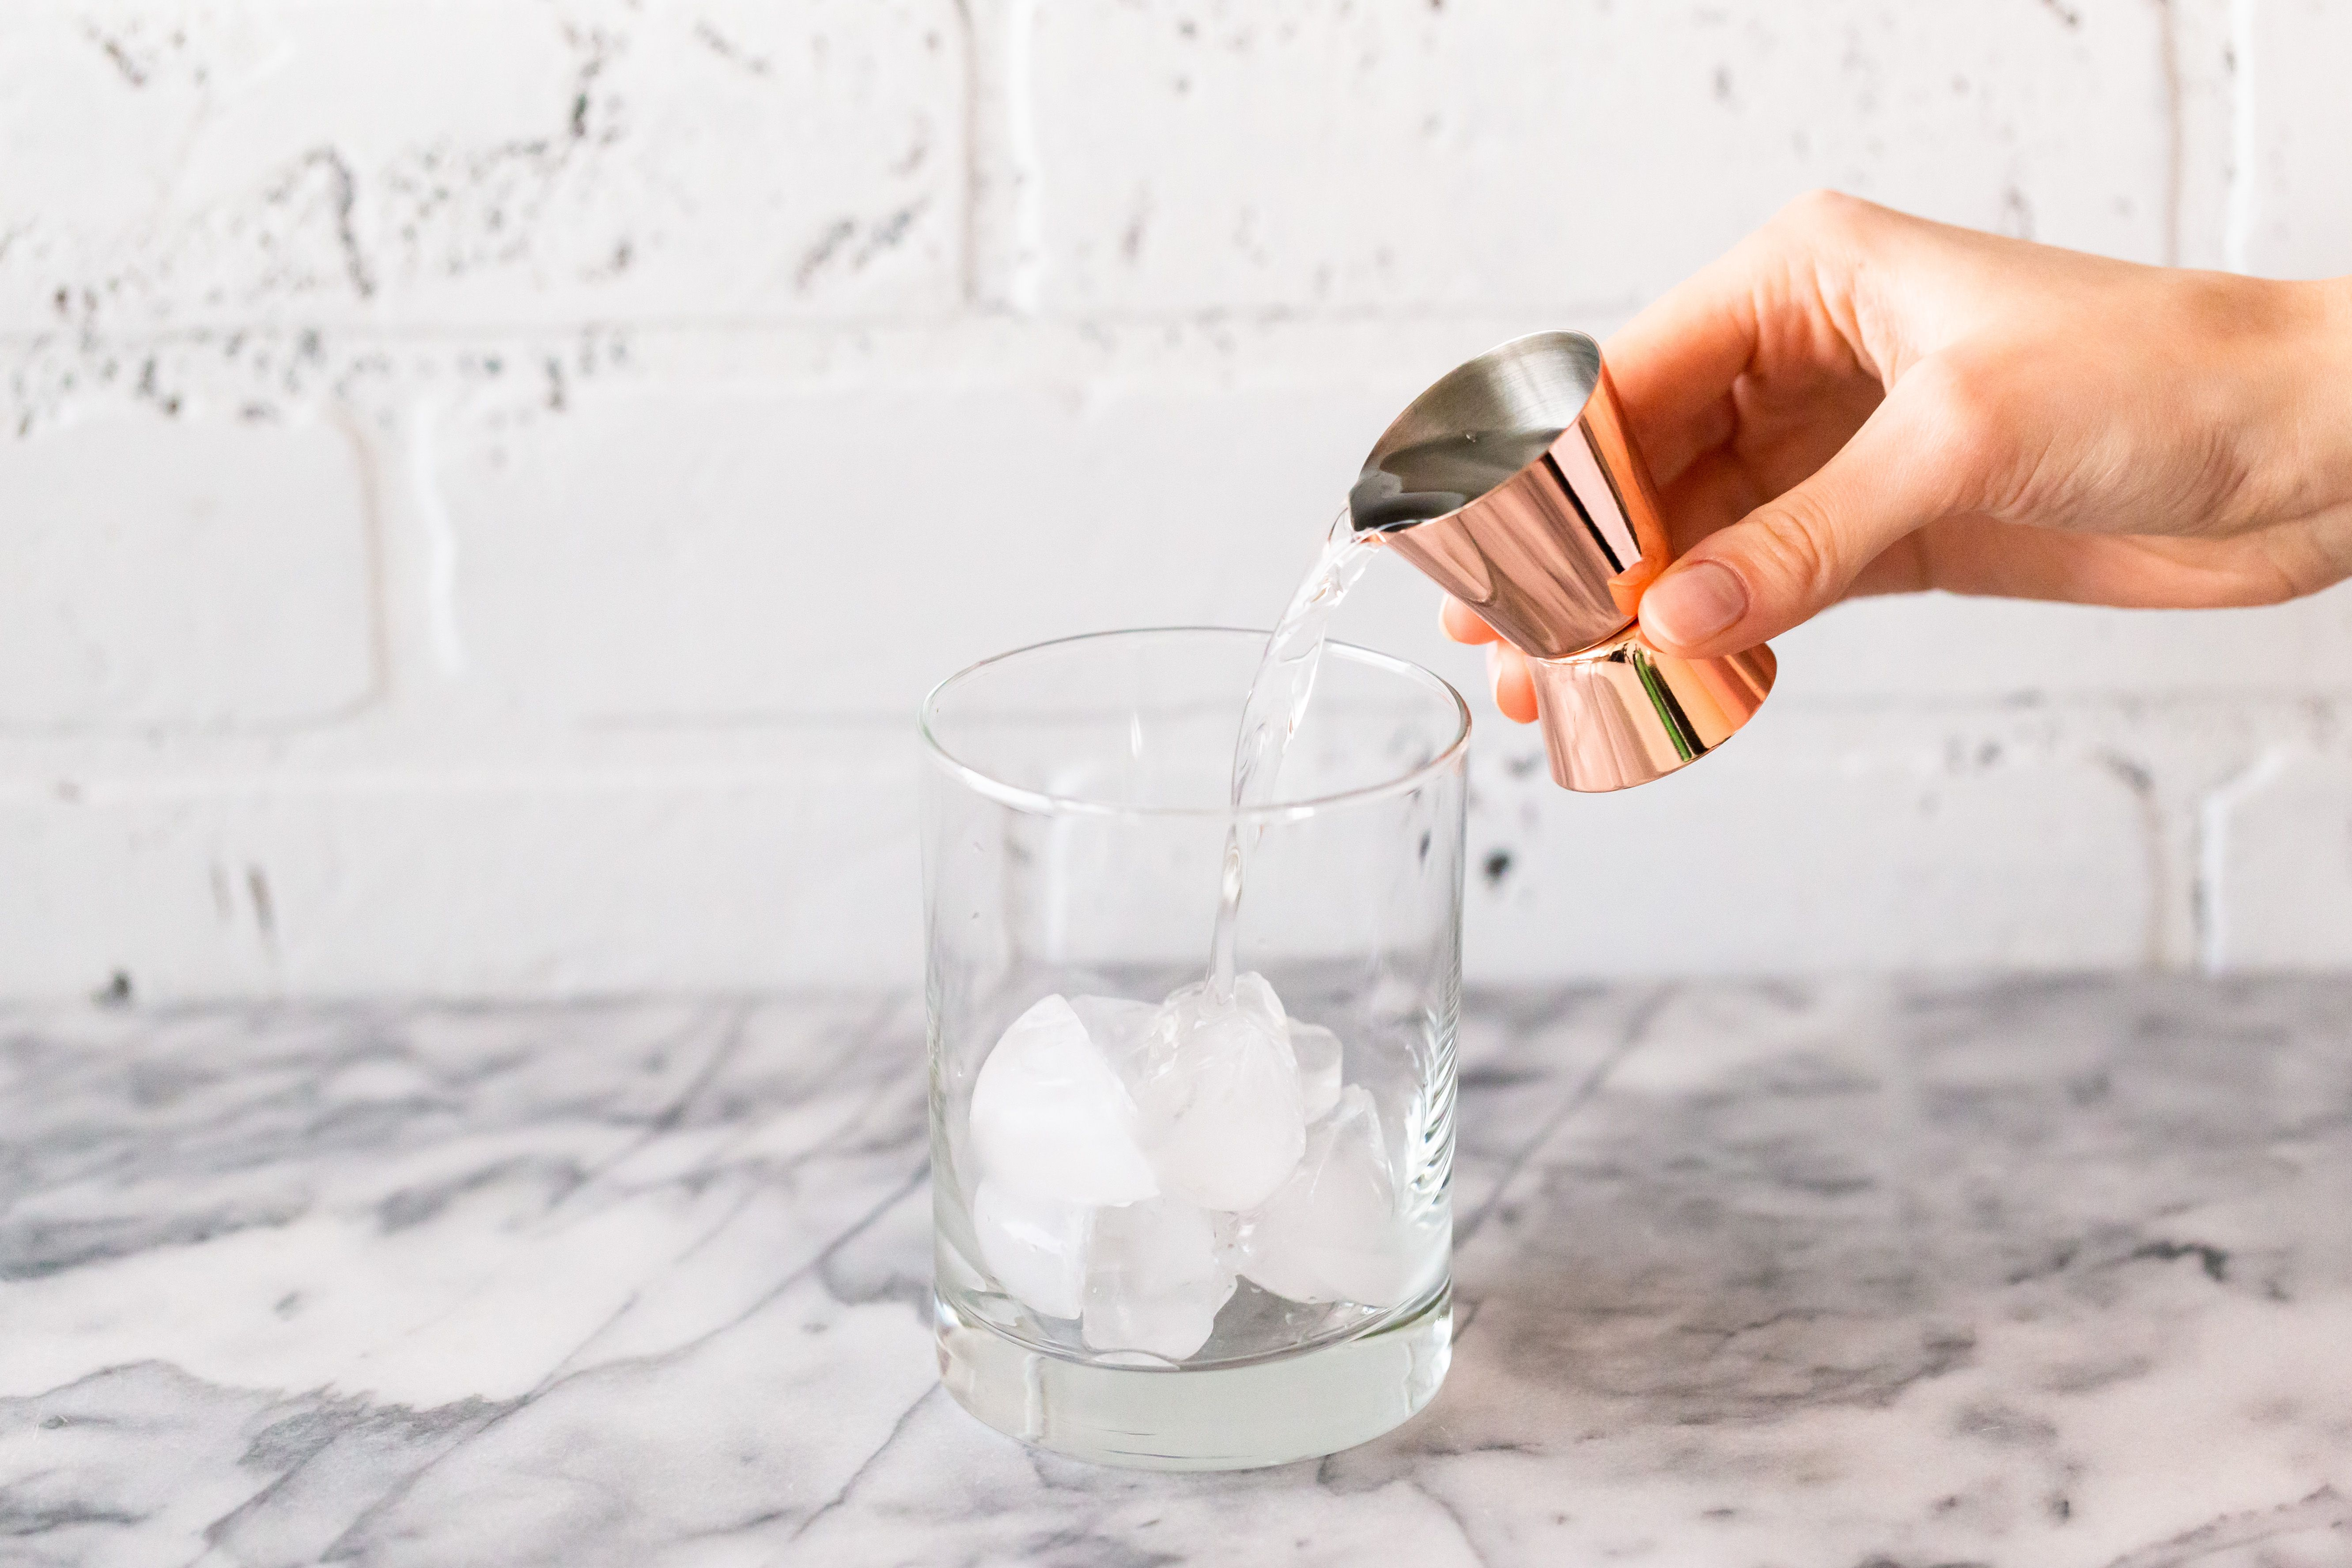 Vodka poured into a glass with ice